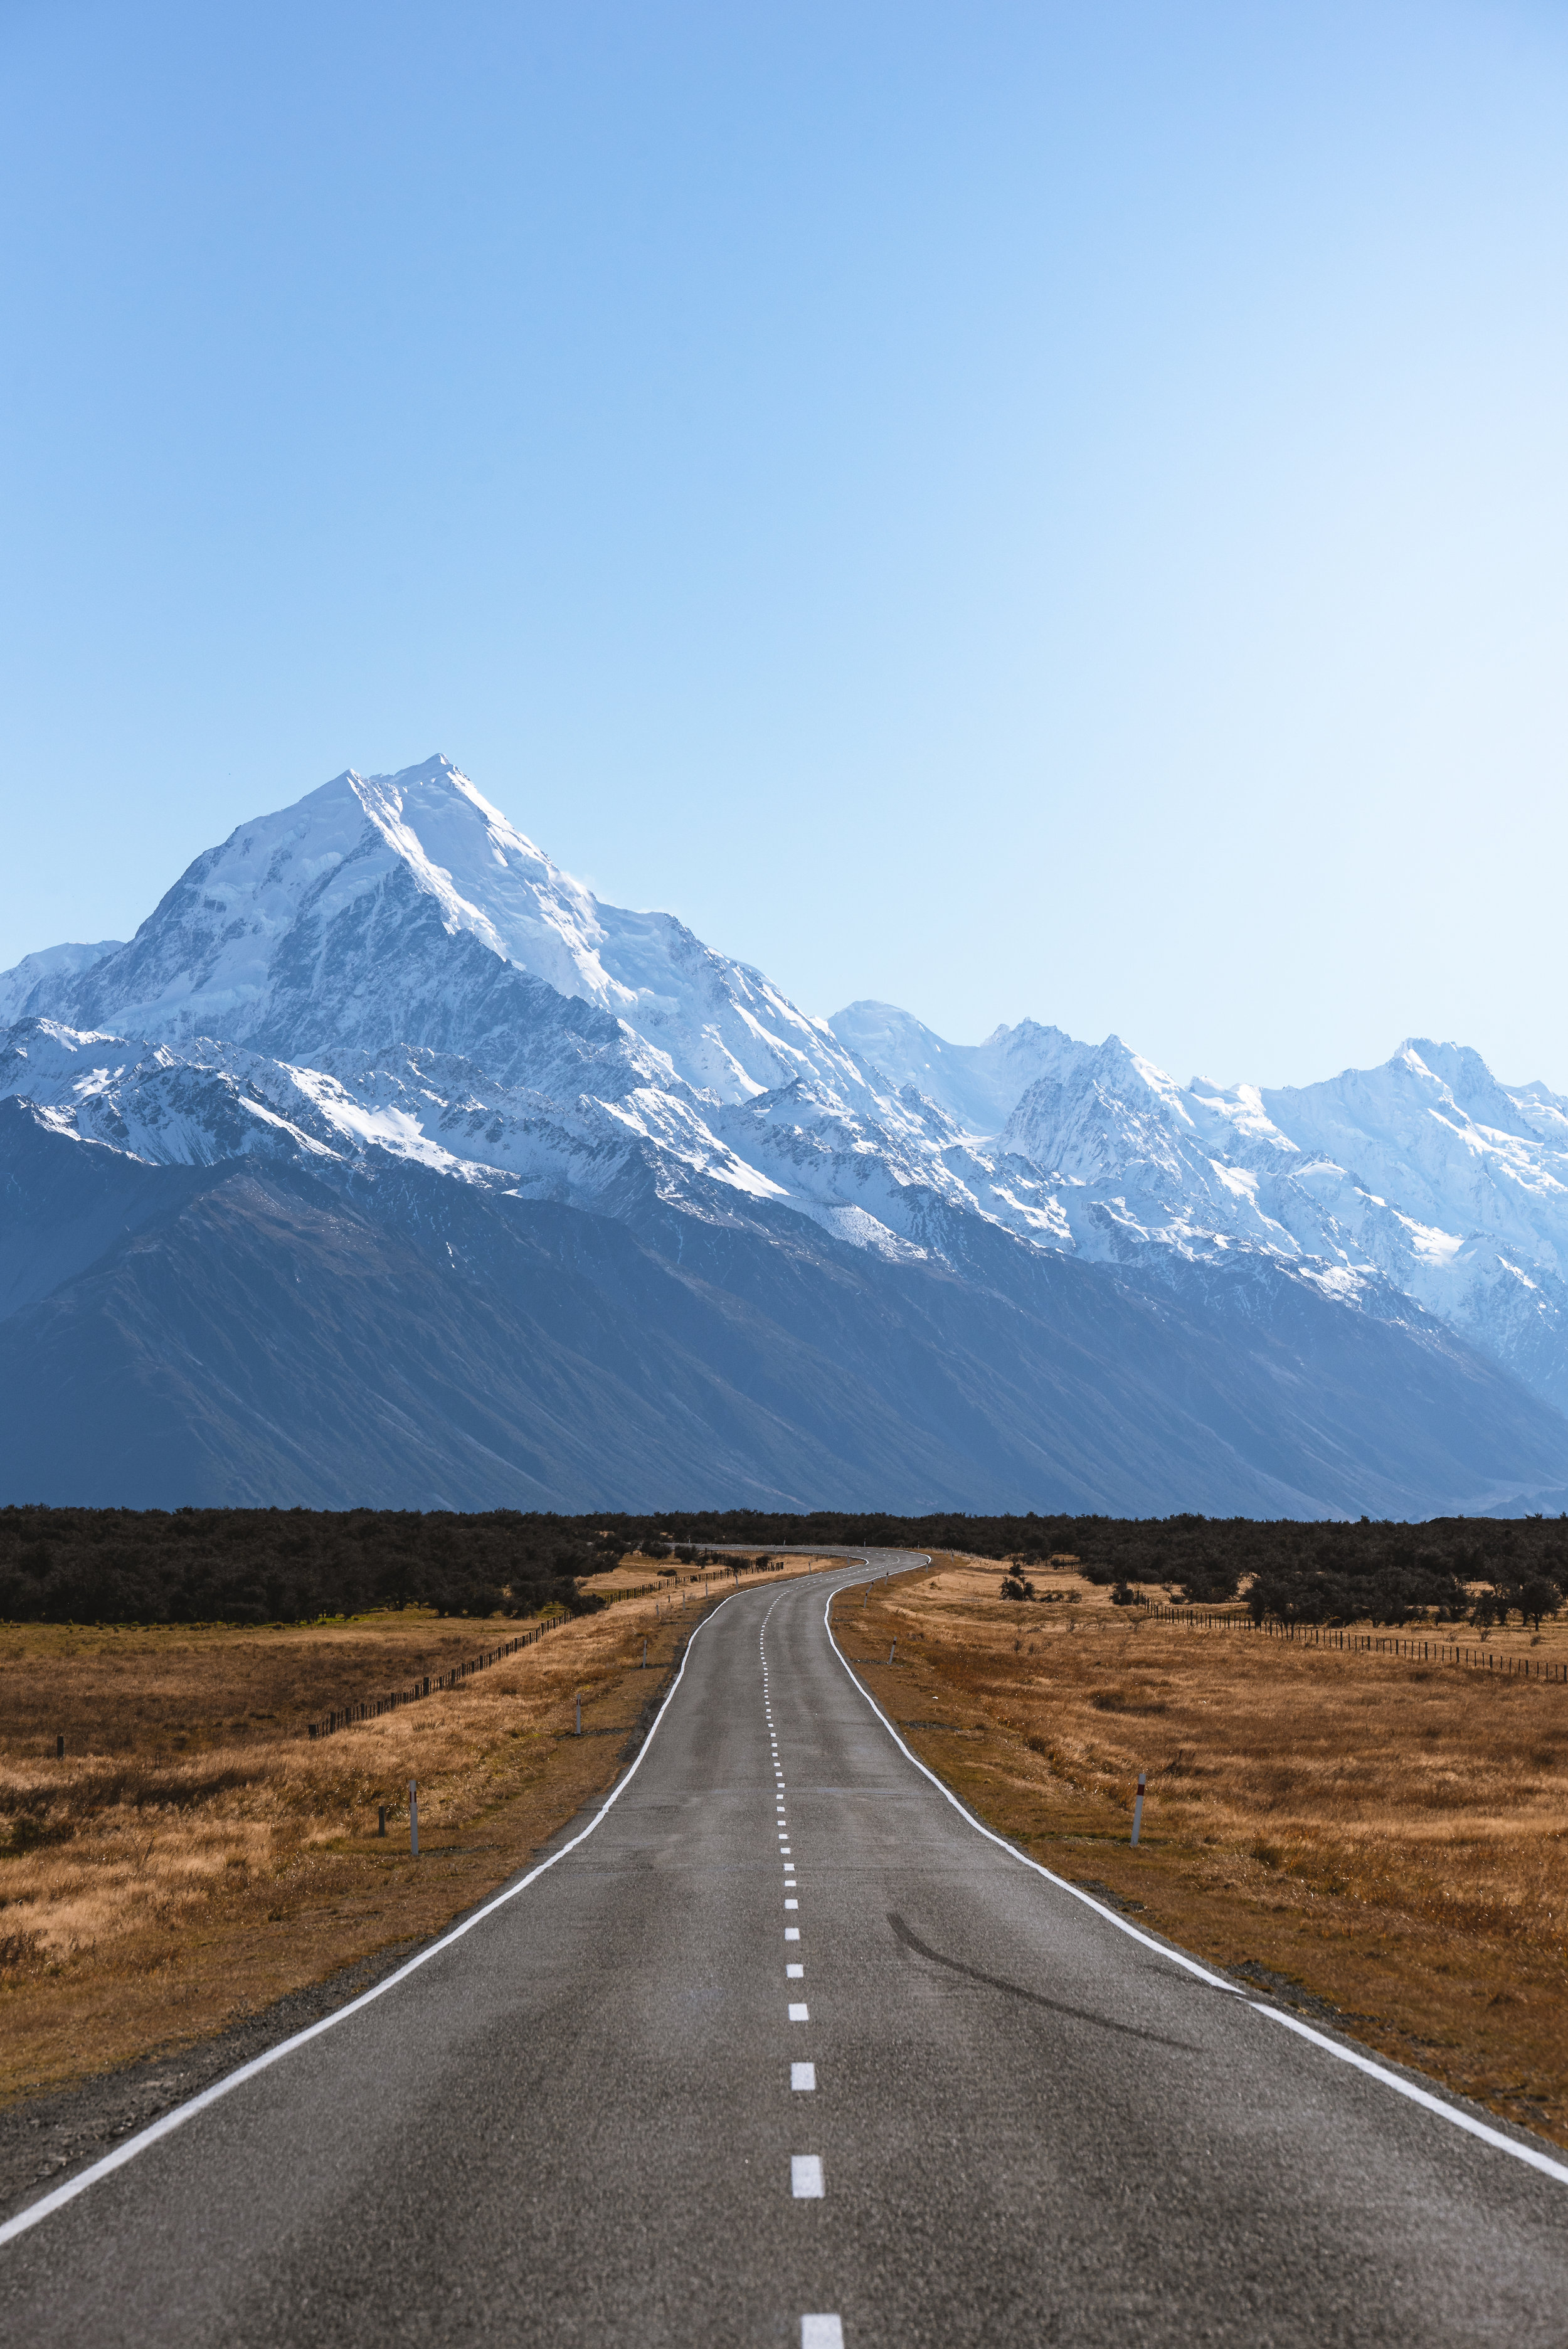 NEW ZEALAND ASKS VISITORS TO PLEDGE TO PROTECT ENVIRONMENT -